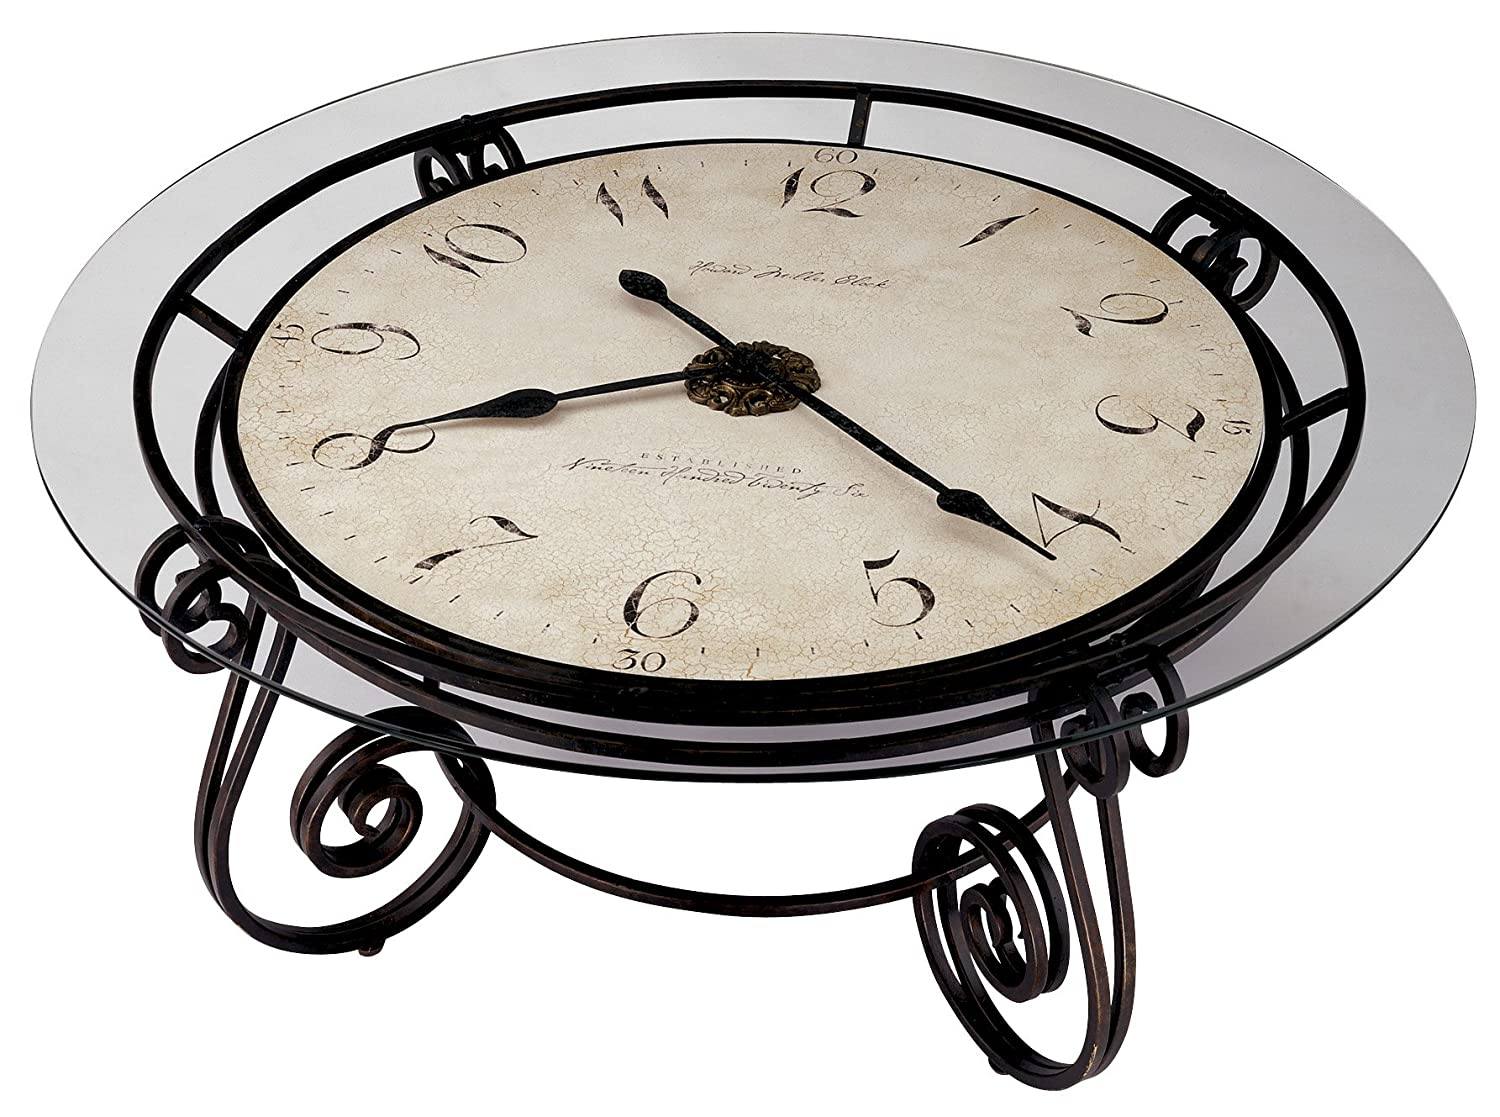 Amazon howard miller 615 010 ravenna cocktail table clock by amazon howard miller 615 010 ravenna cocktail table clock by home kitchen geotapseo Image collections